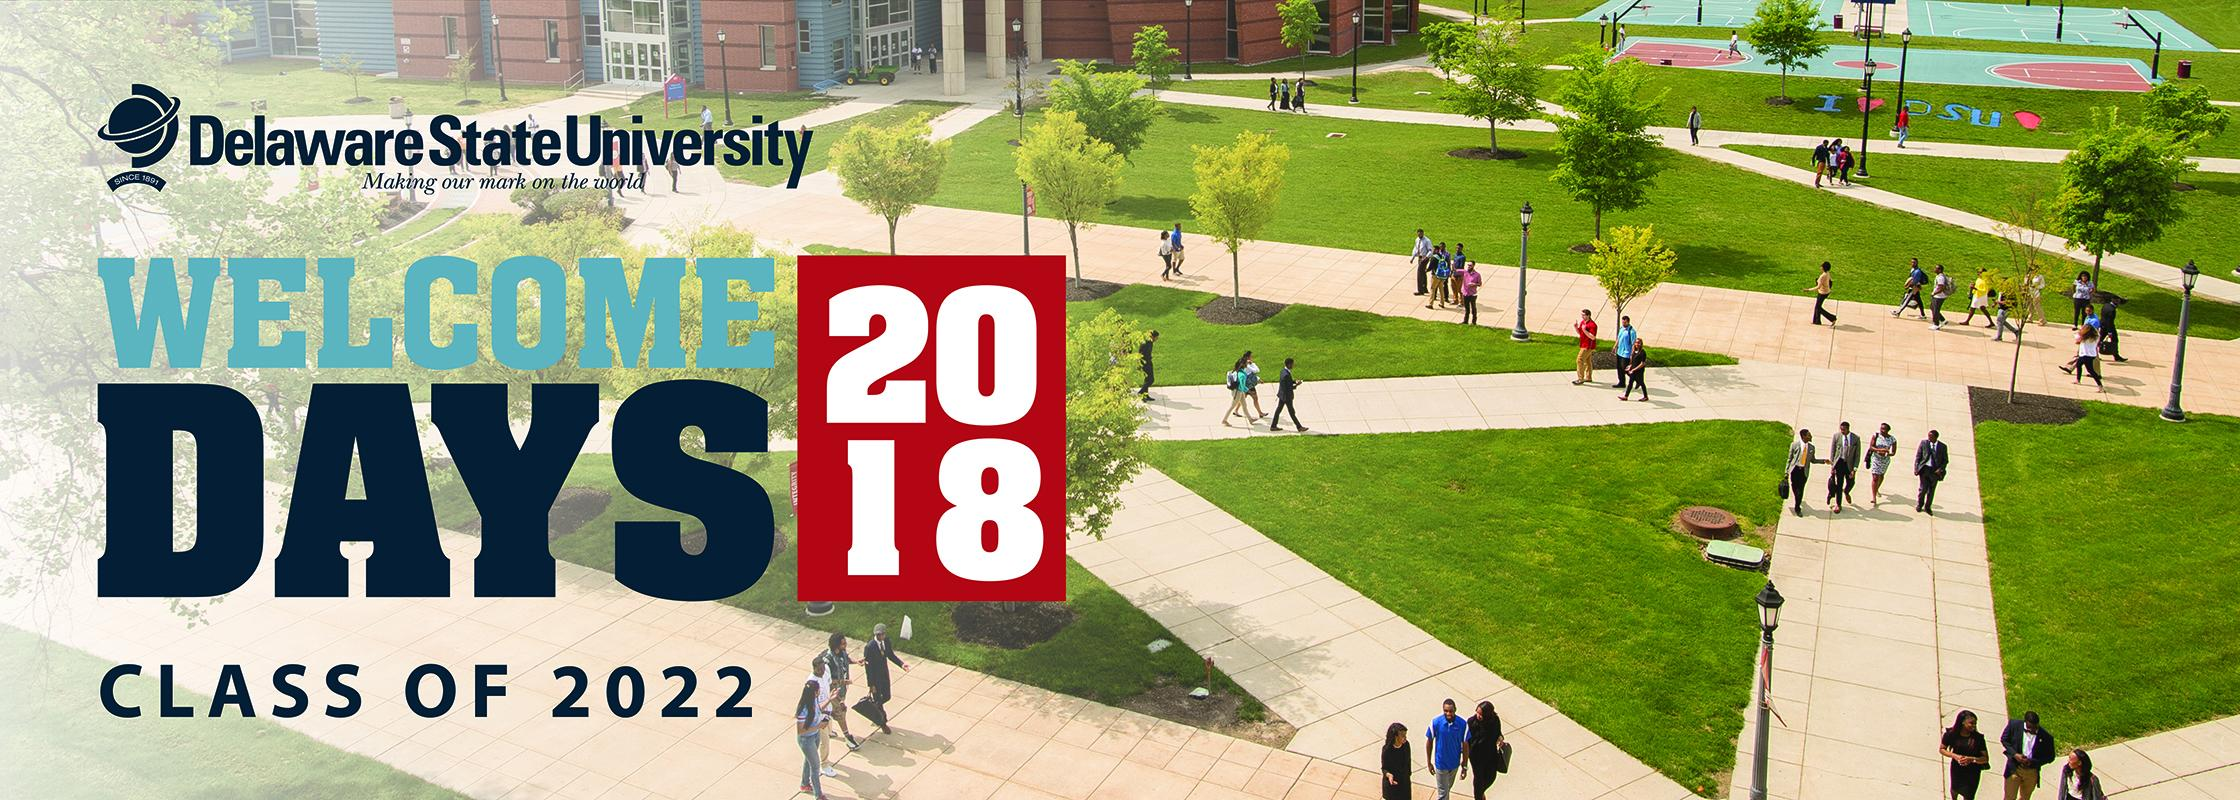 Delaware State University Welcome Days 2018